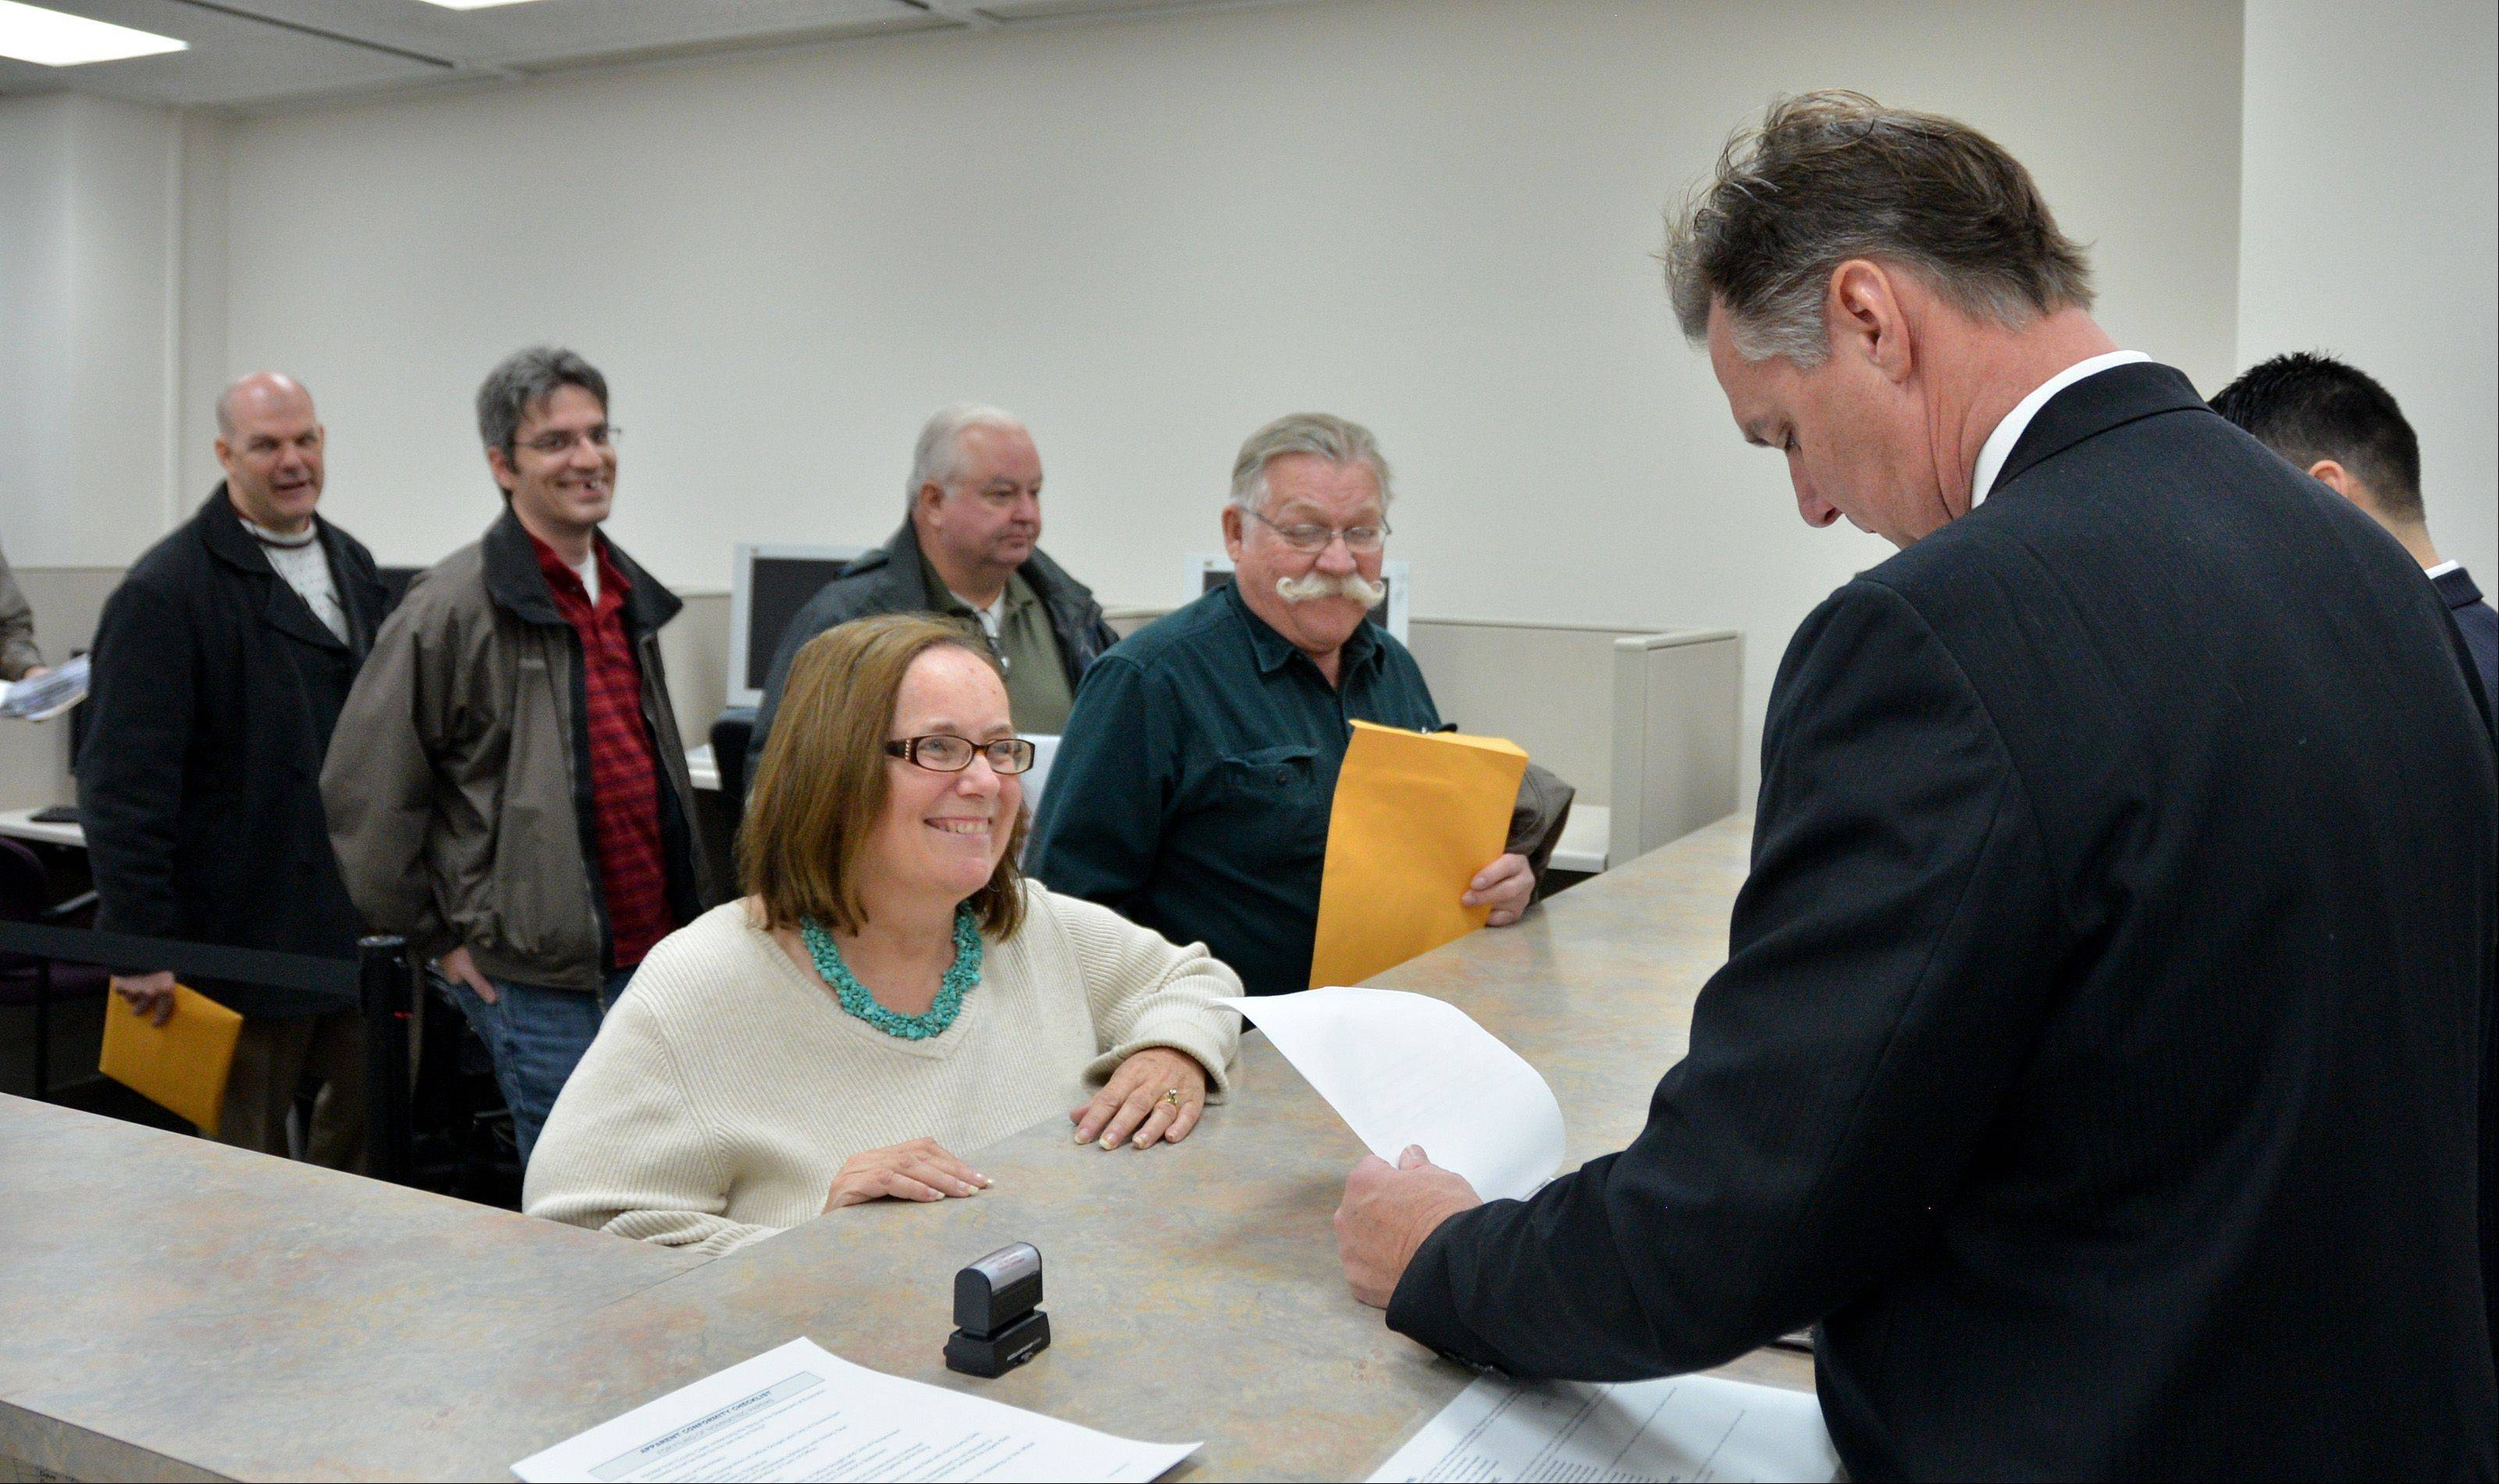 "DuPage County Board hopeful Paula McGowen of Glen Ellyn, center, arrived at 5:15 a.m. Monday to be the first person in line to file for the March 18 primary election. A self-described ""early bird,"" she arrived 45 minutes before the doors opened at 6 a.m. even though she couldn't file until 8 a.m."